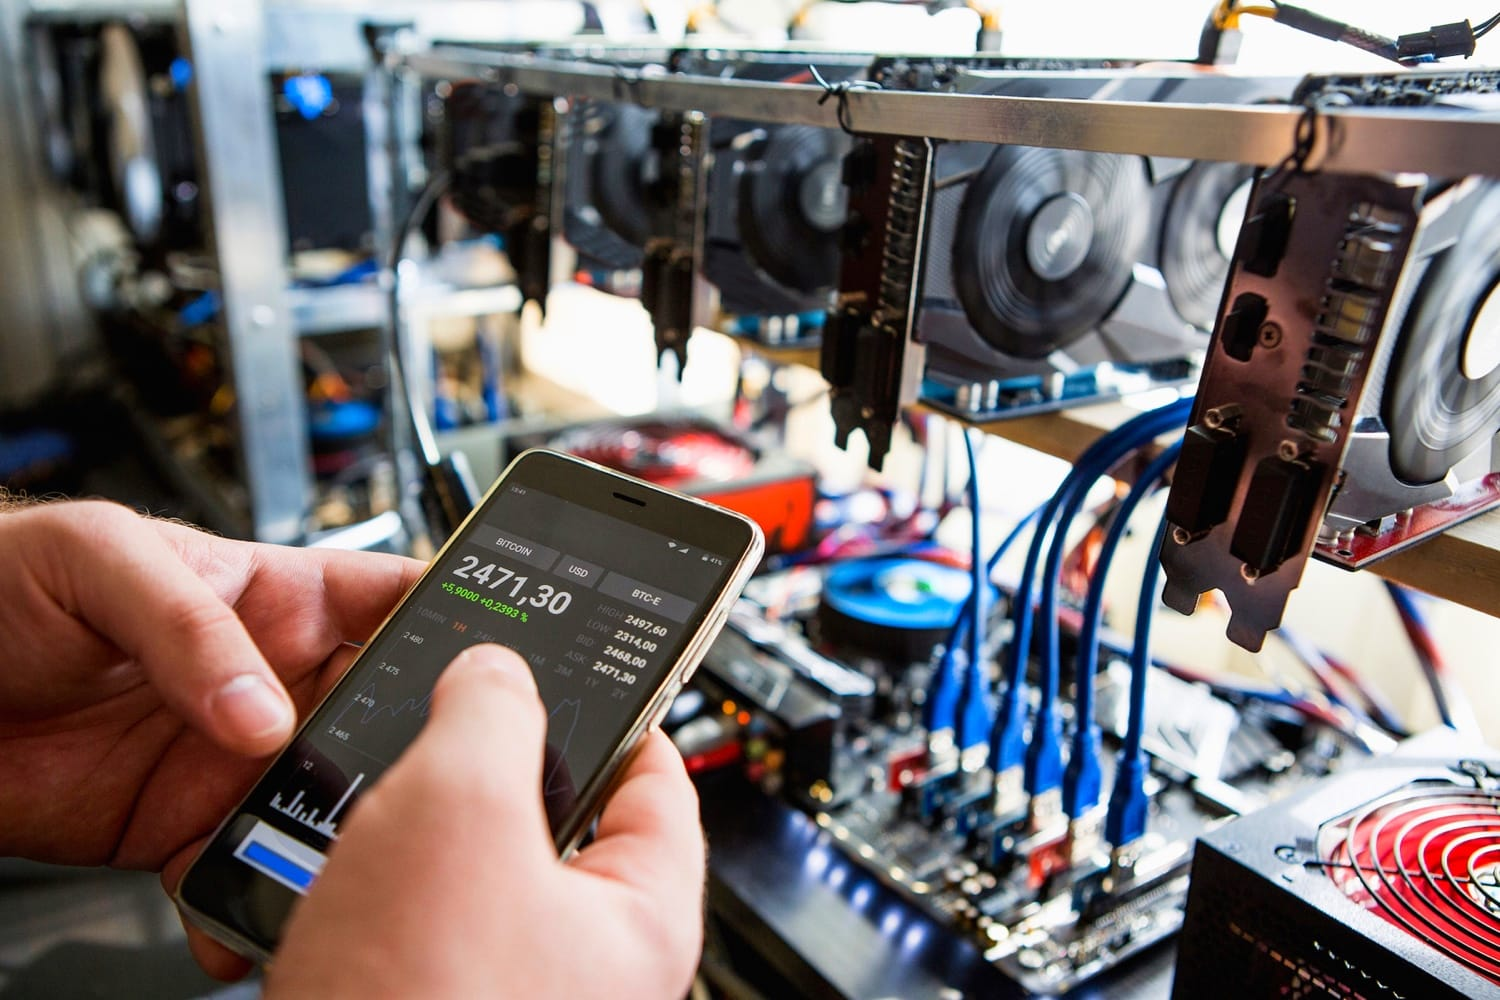 Licensed Iranian crypto miners ordered to halt production 'altogether'